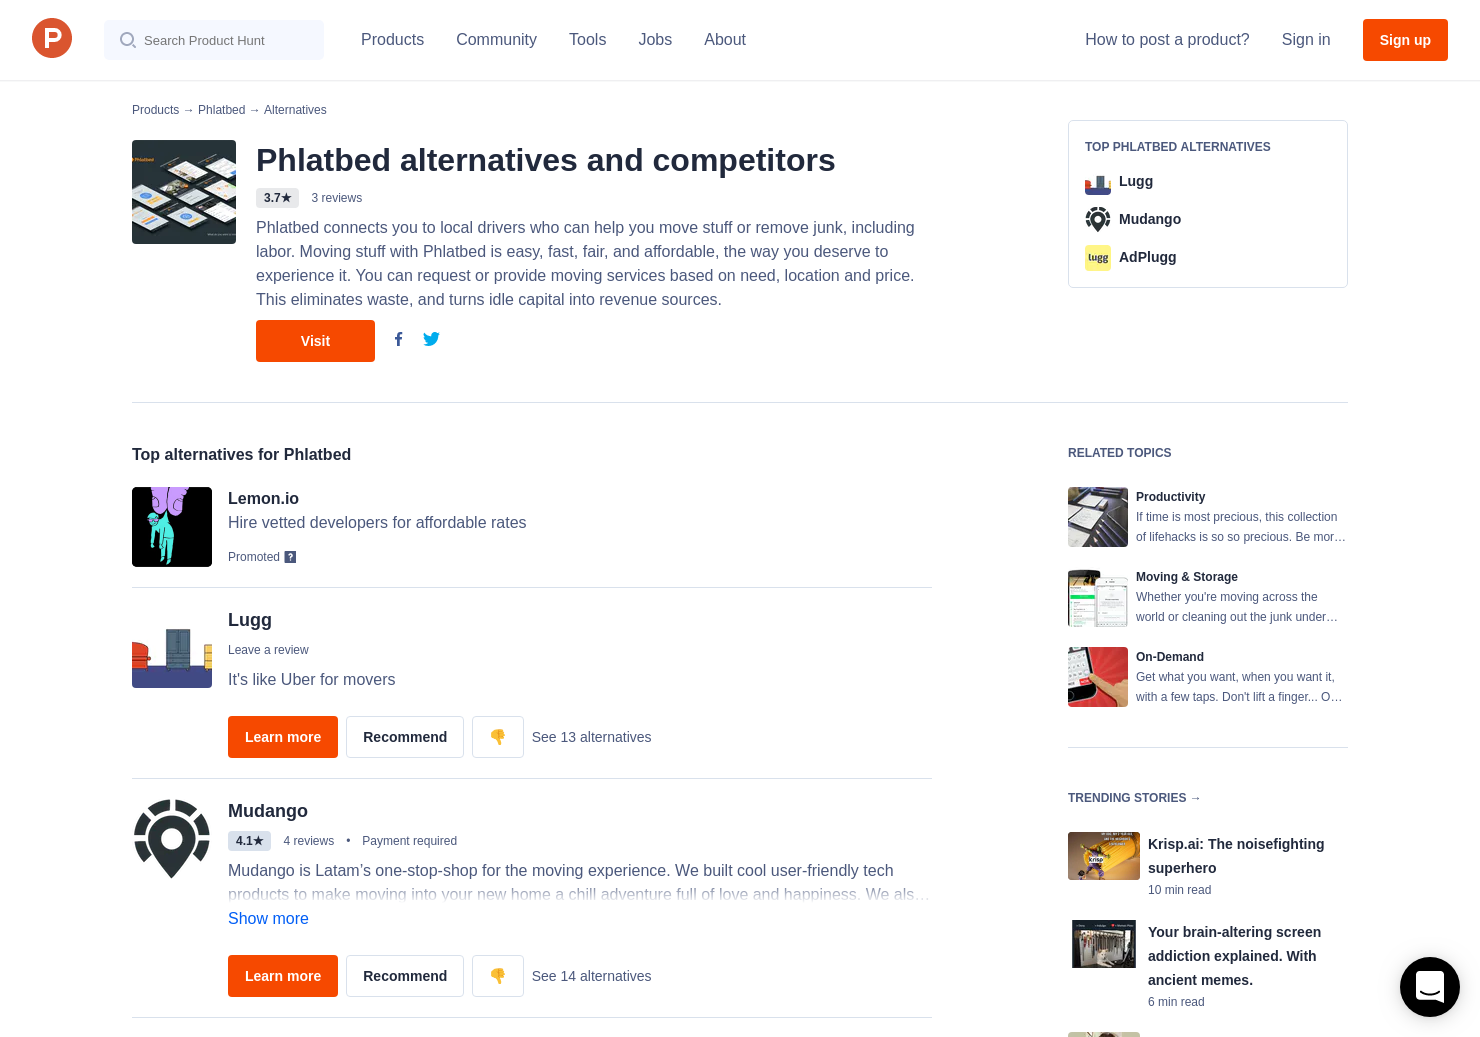 9 Alternatives to Phlatbed   Product Hunt